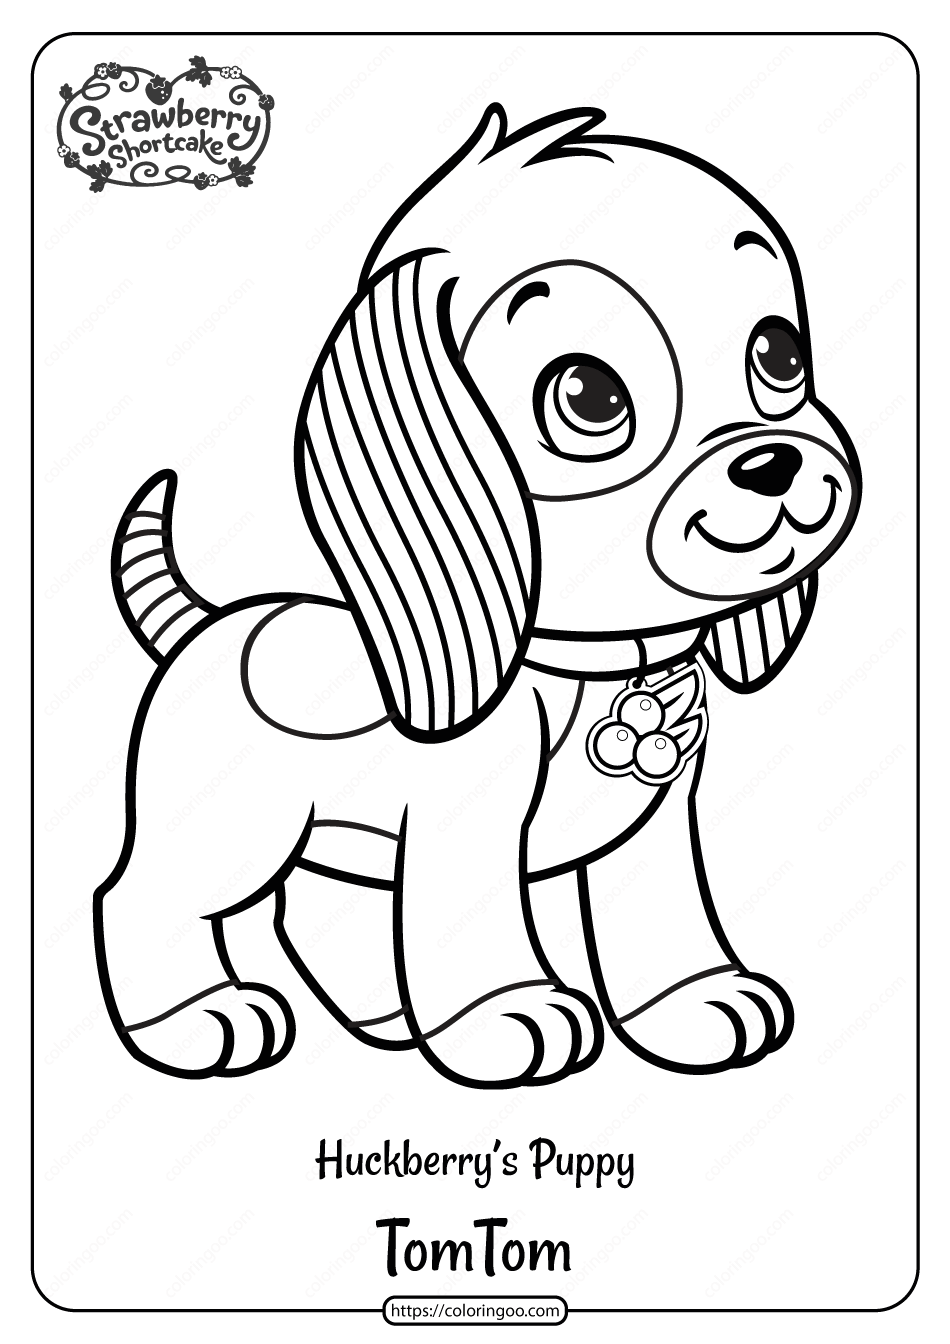 Printable Huckleberry S Puppy Tom Tom Coloring Page Puppy Coloring Pages Strawberry Shortcake Coloring Pages Cute Coloring Pages [ 1344 x 950 Pixel ]